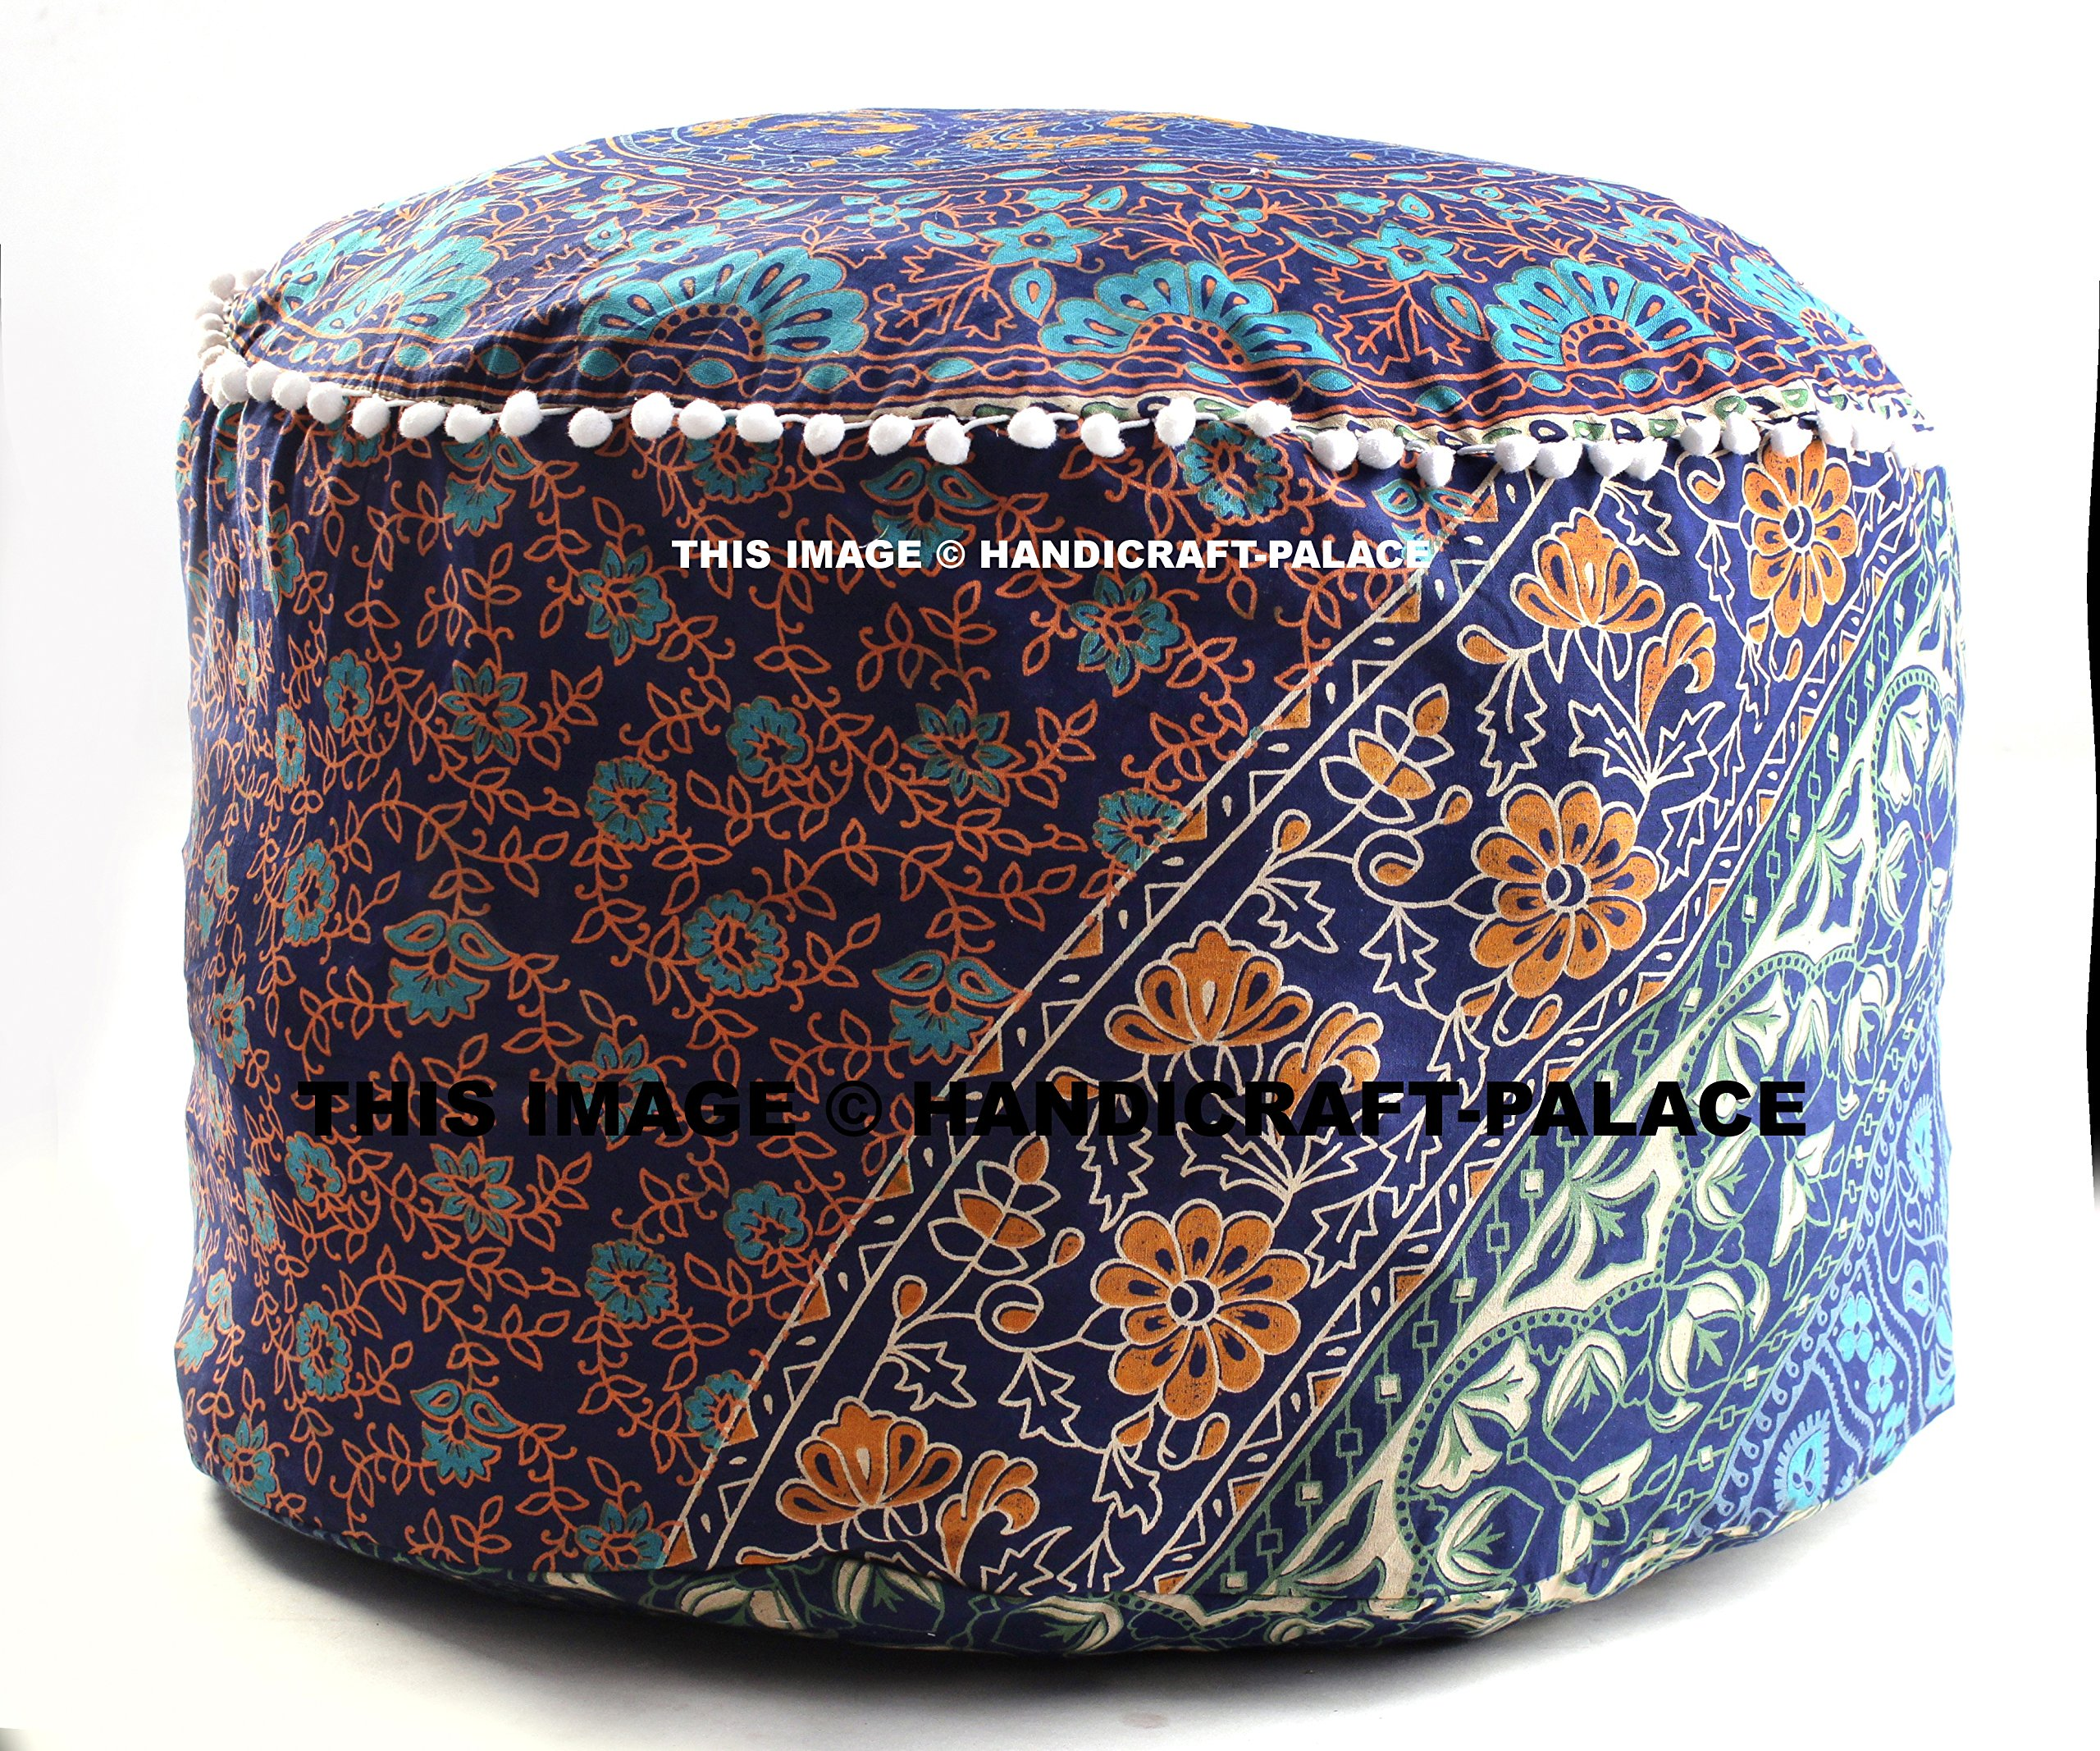 Indian Handmade Cotton Pouf Cover Floral Mandala Indian Pouf Ottoman Cover Round Poof Pouffe Foot Stool Floor Pillow Decor Home Decor Room Decor Sold By ''Handicraft-Palace''